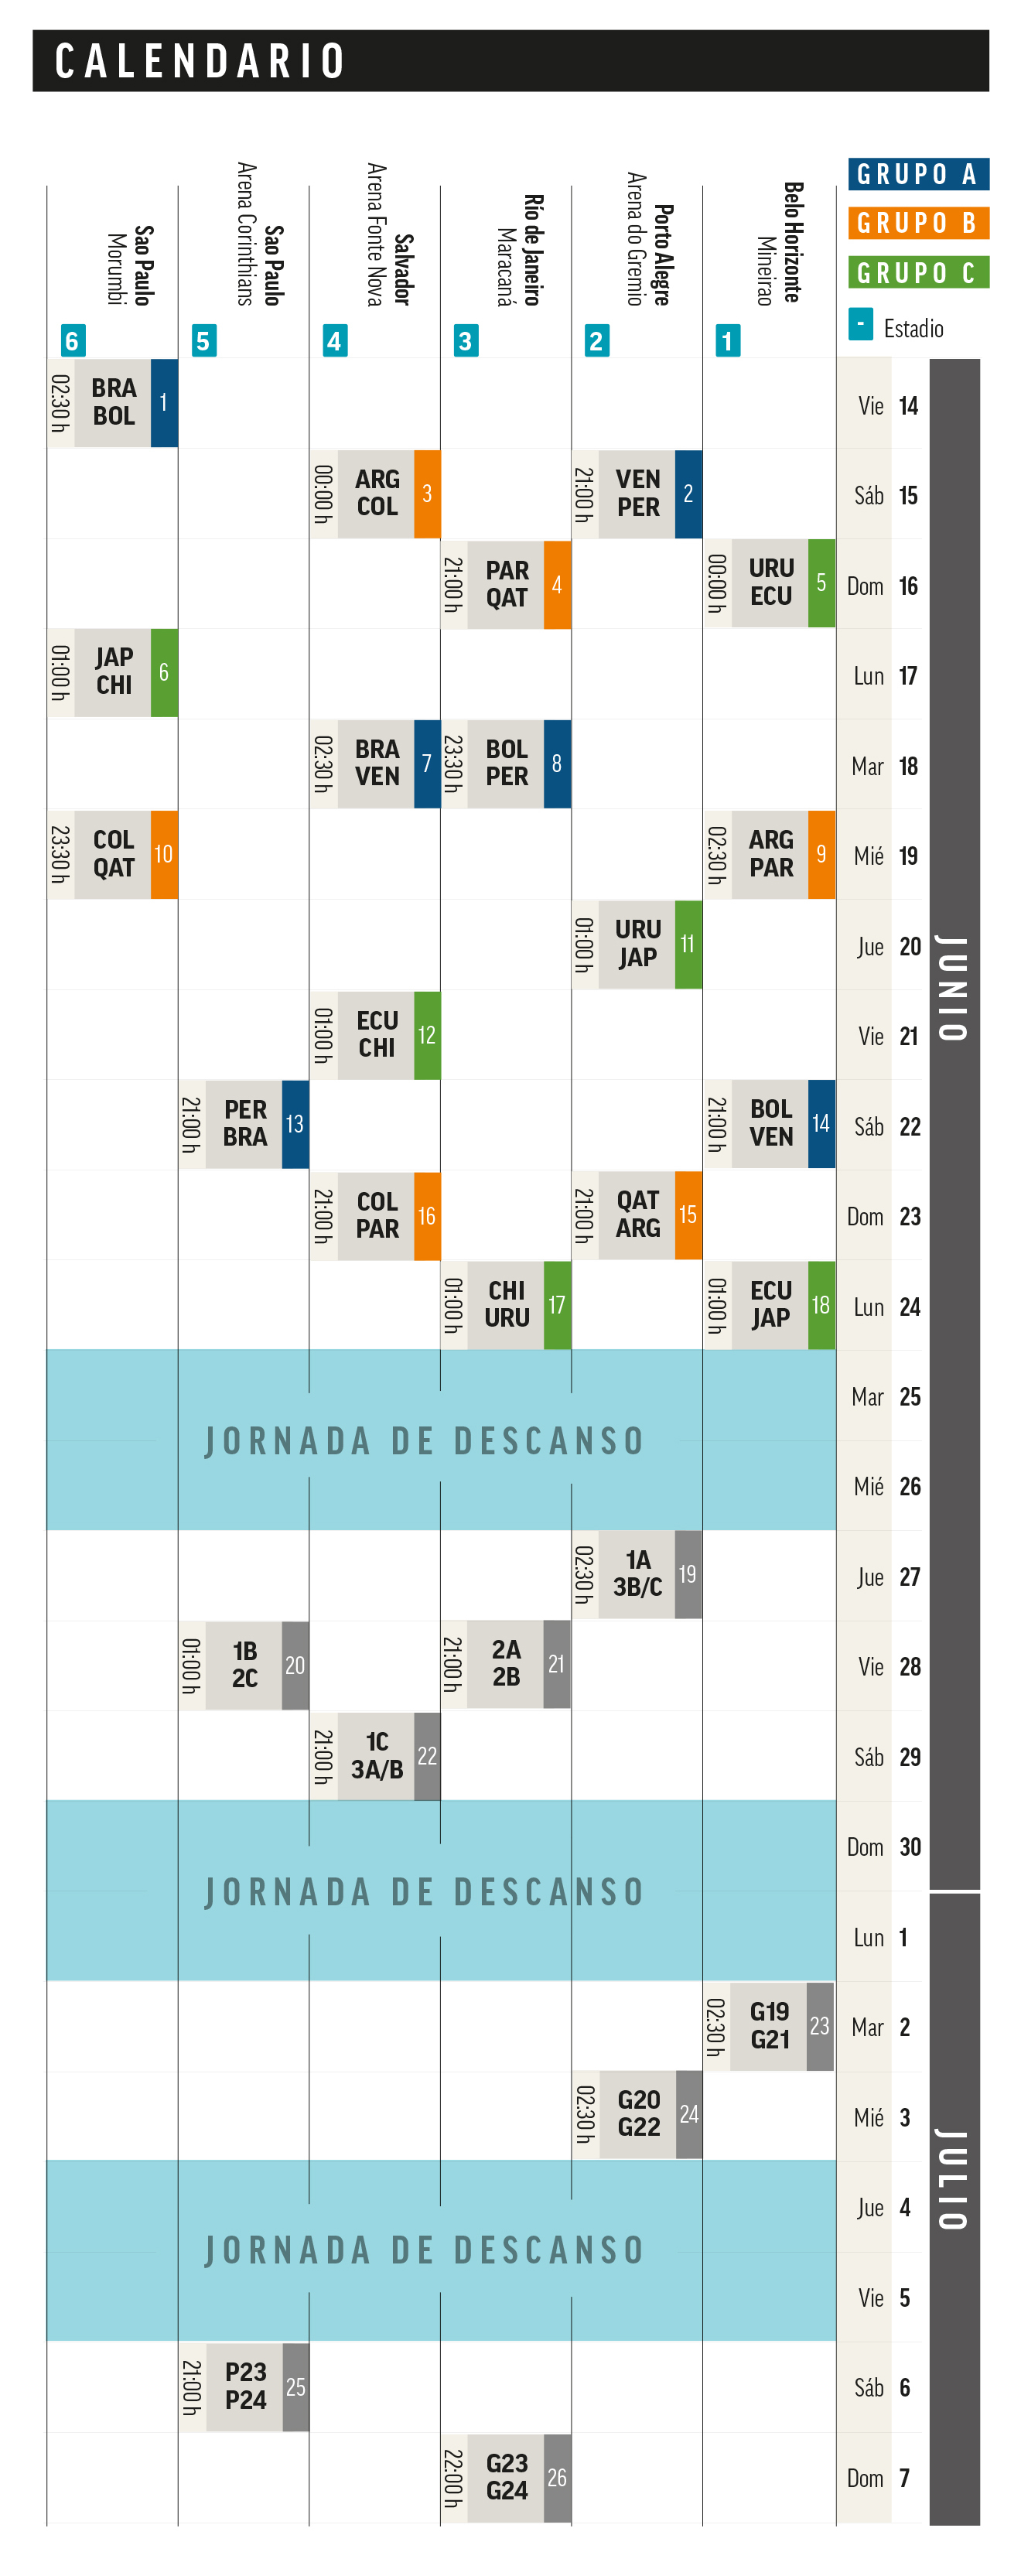 Calendario Coppa America.Messi And Argentina Go After Copa America Glory Haunted By